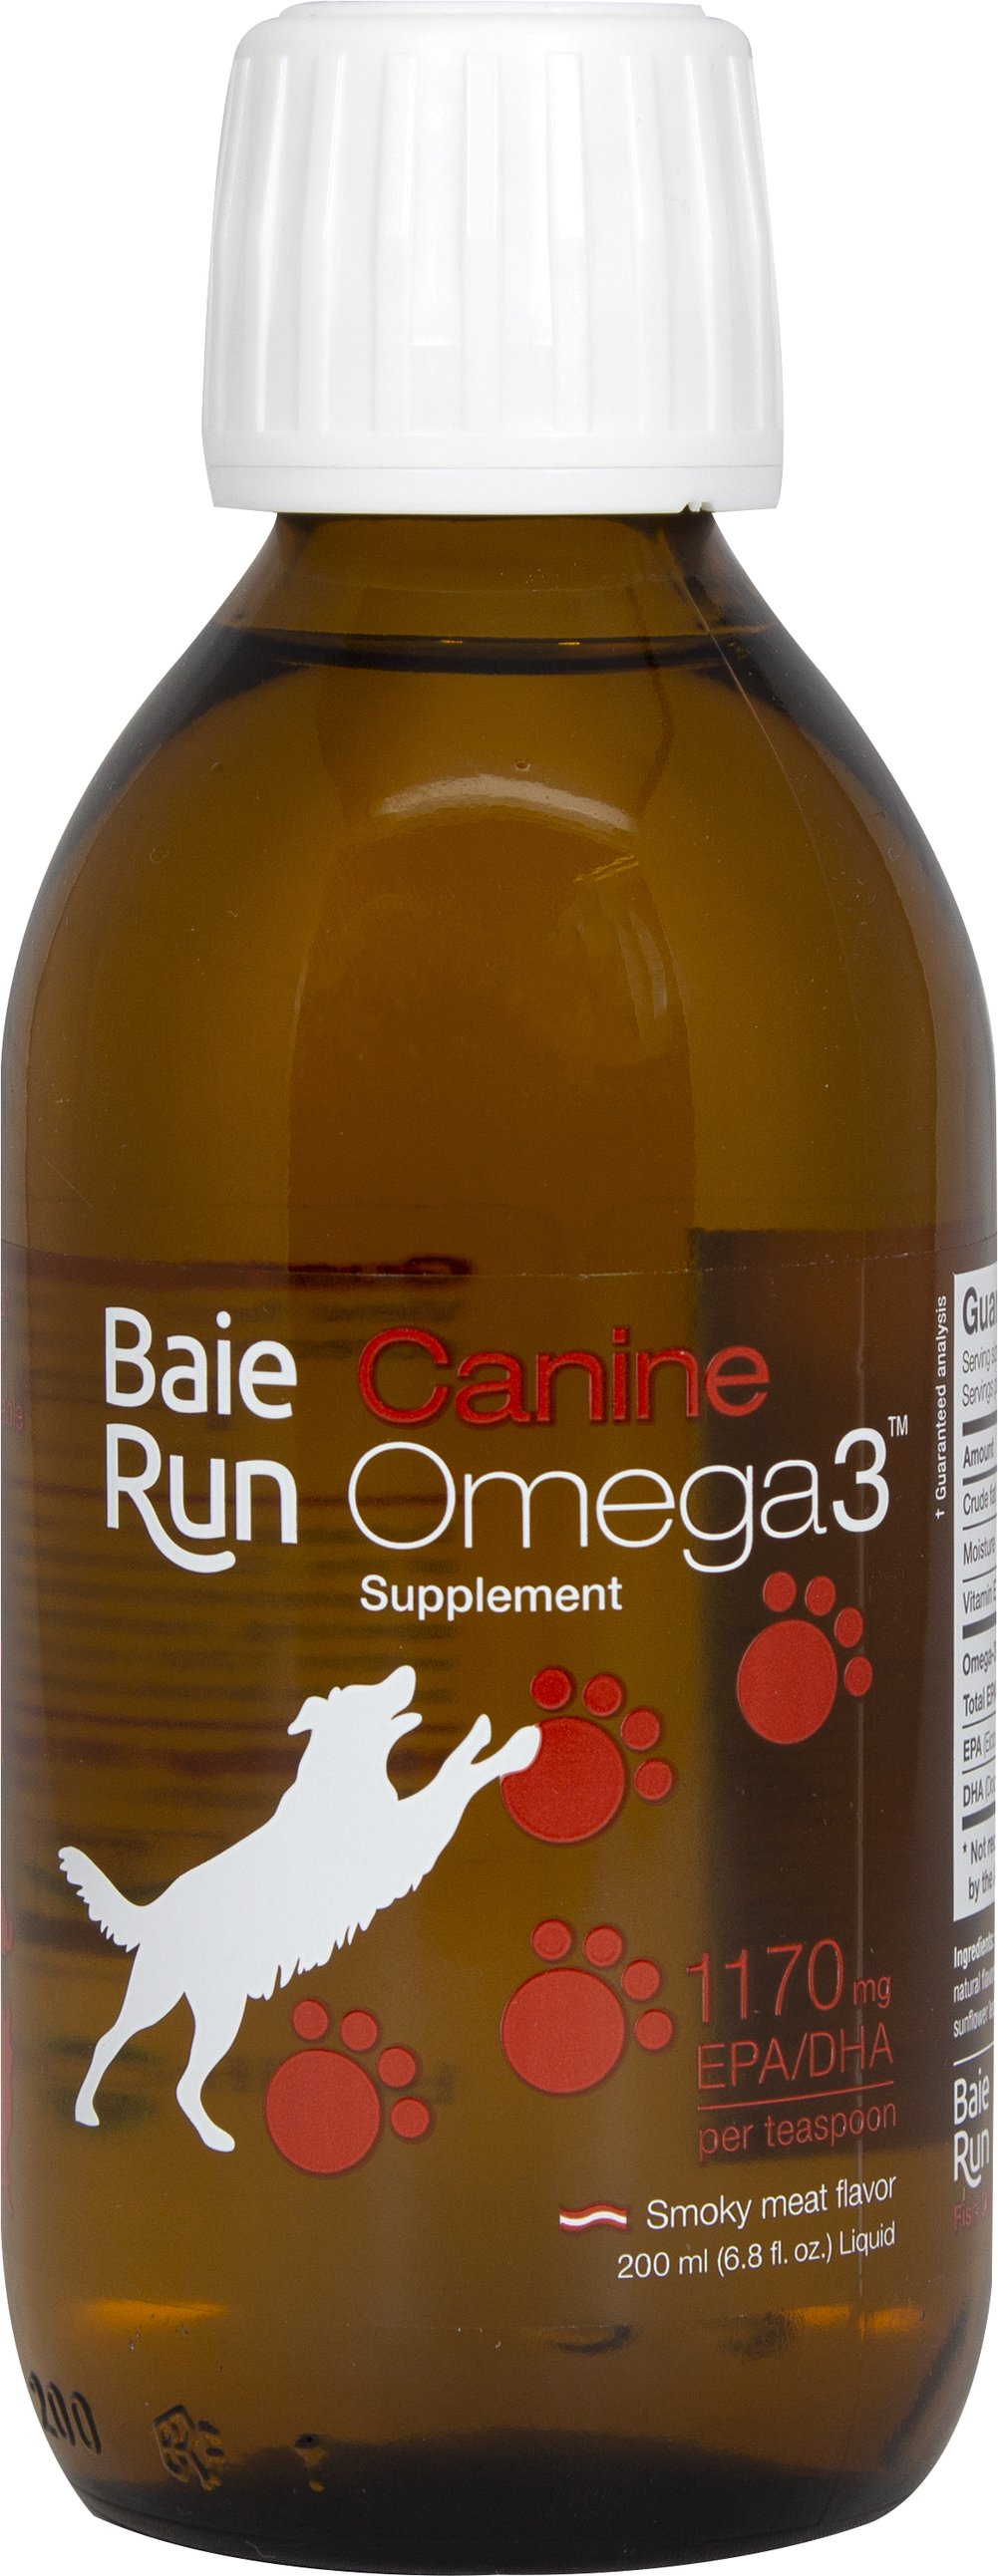 Canine Omega-3 Thumbnail Alternate Bottle View